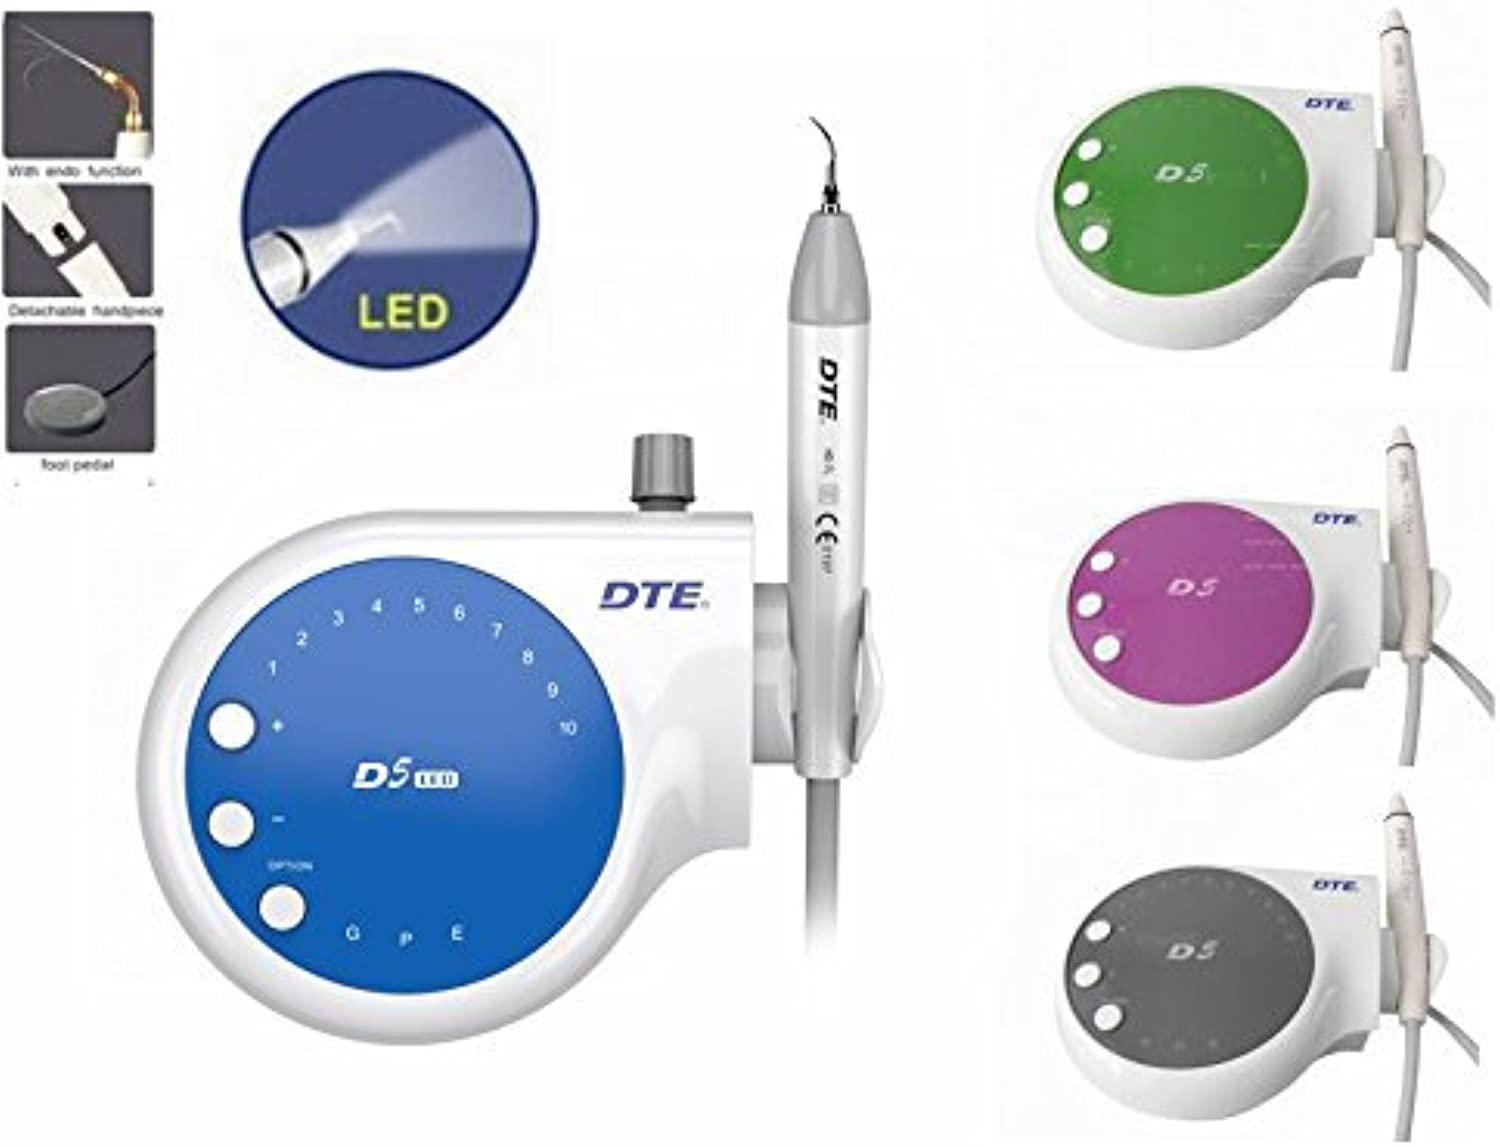 Aprodite Originally Woodpecker DTE D5 with LED SATELEC Compatible CE 220V